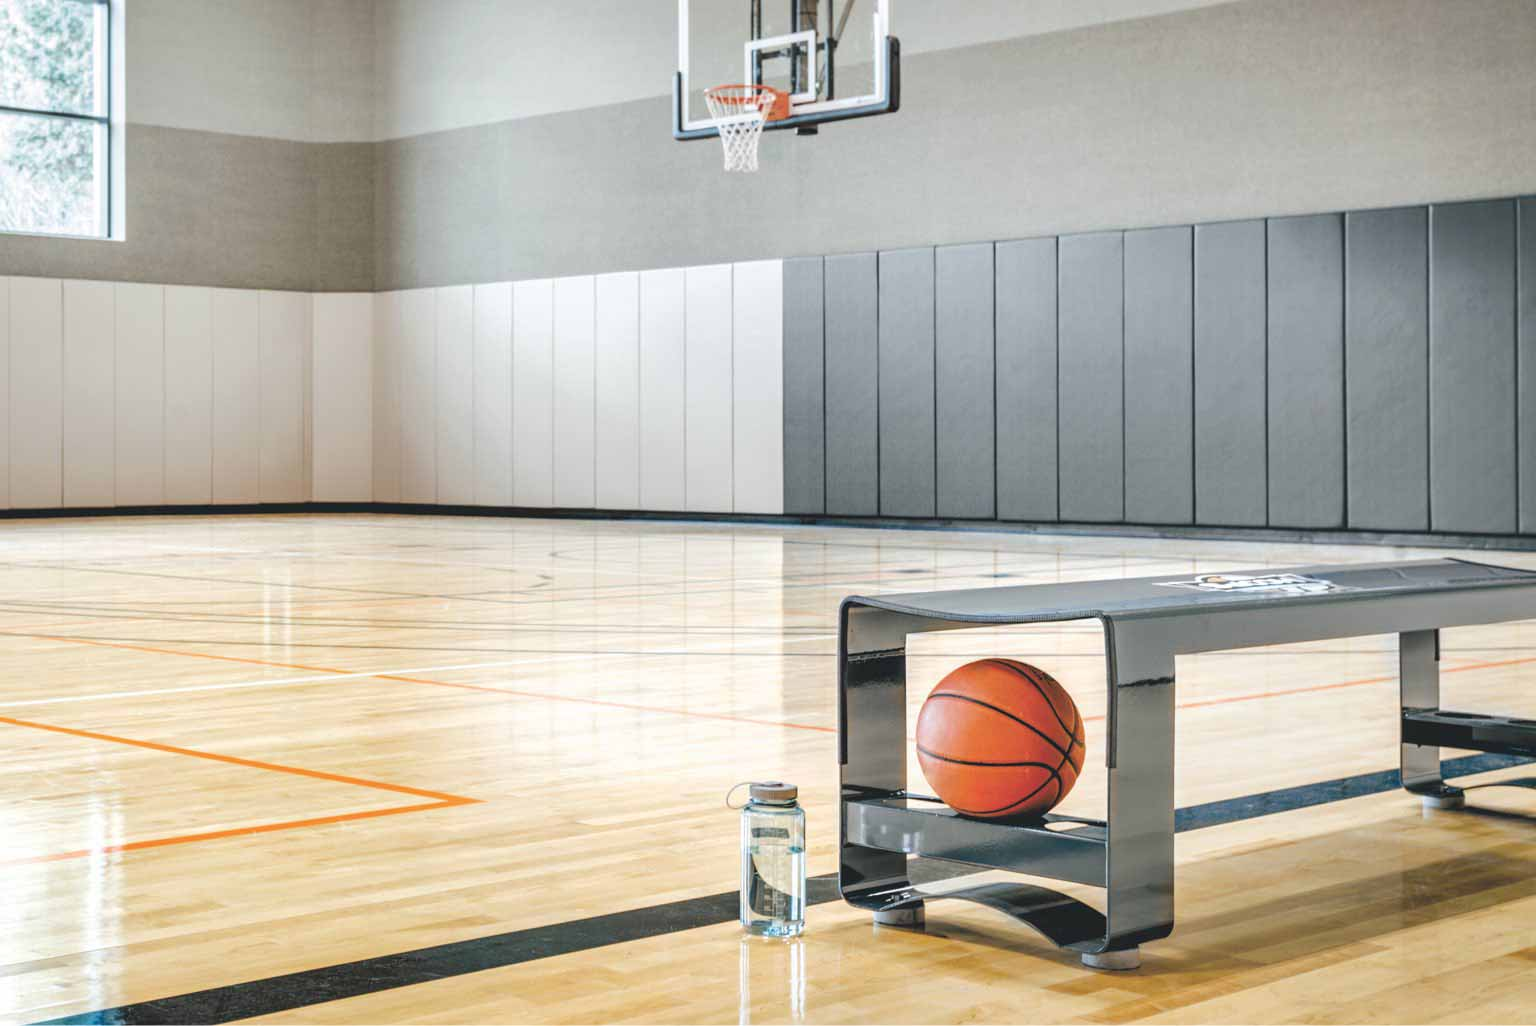 Bench and Basketball on the floor of gym